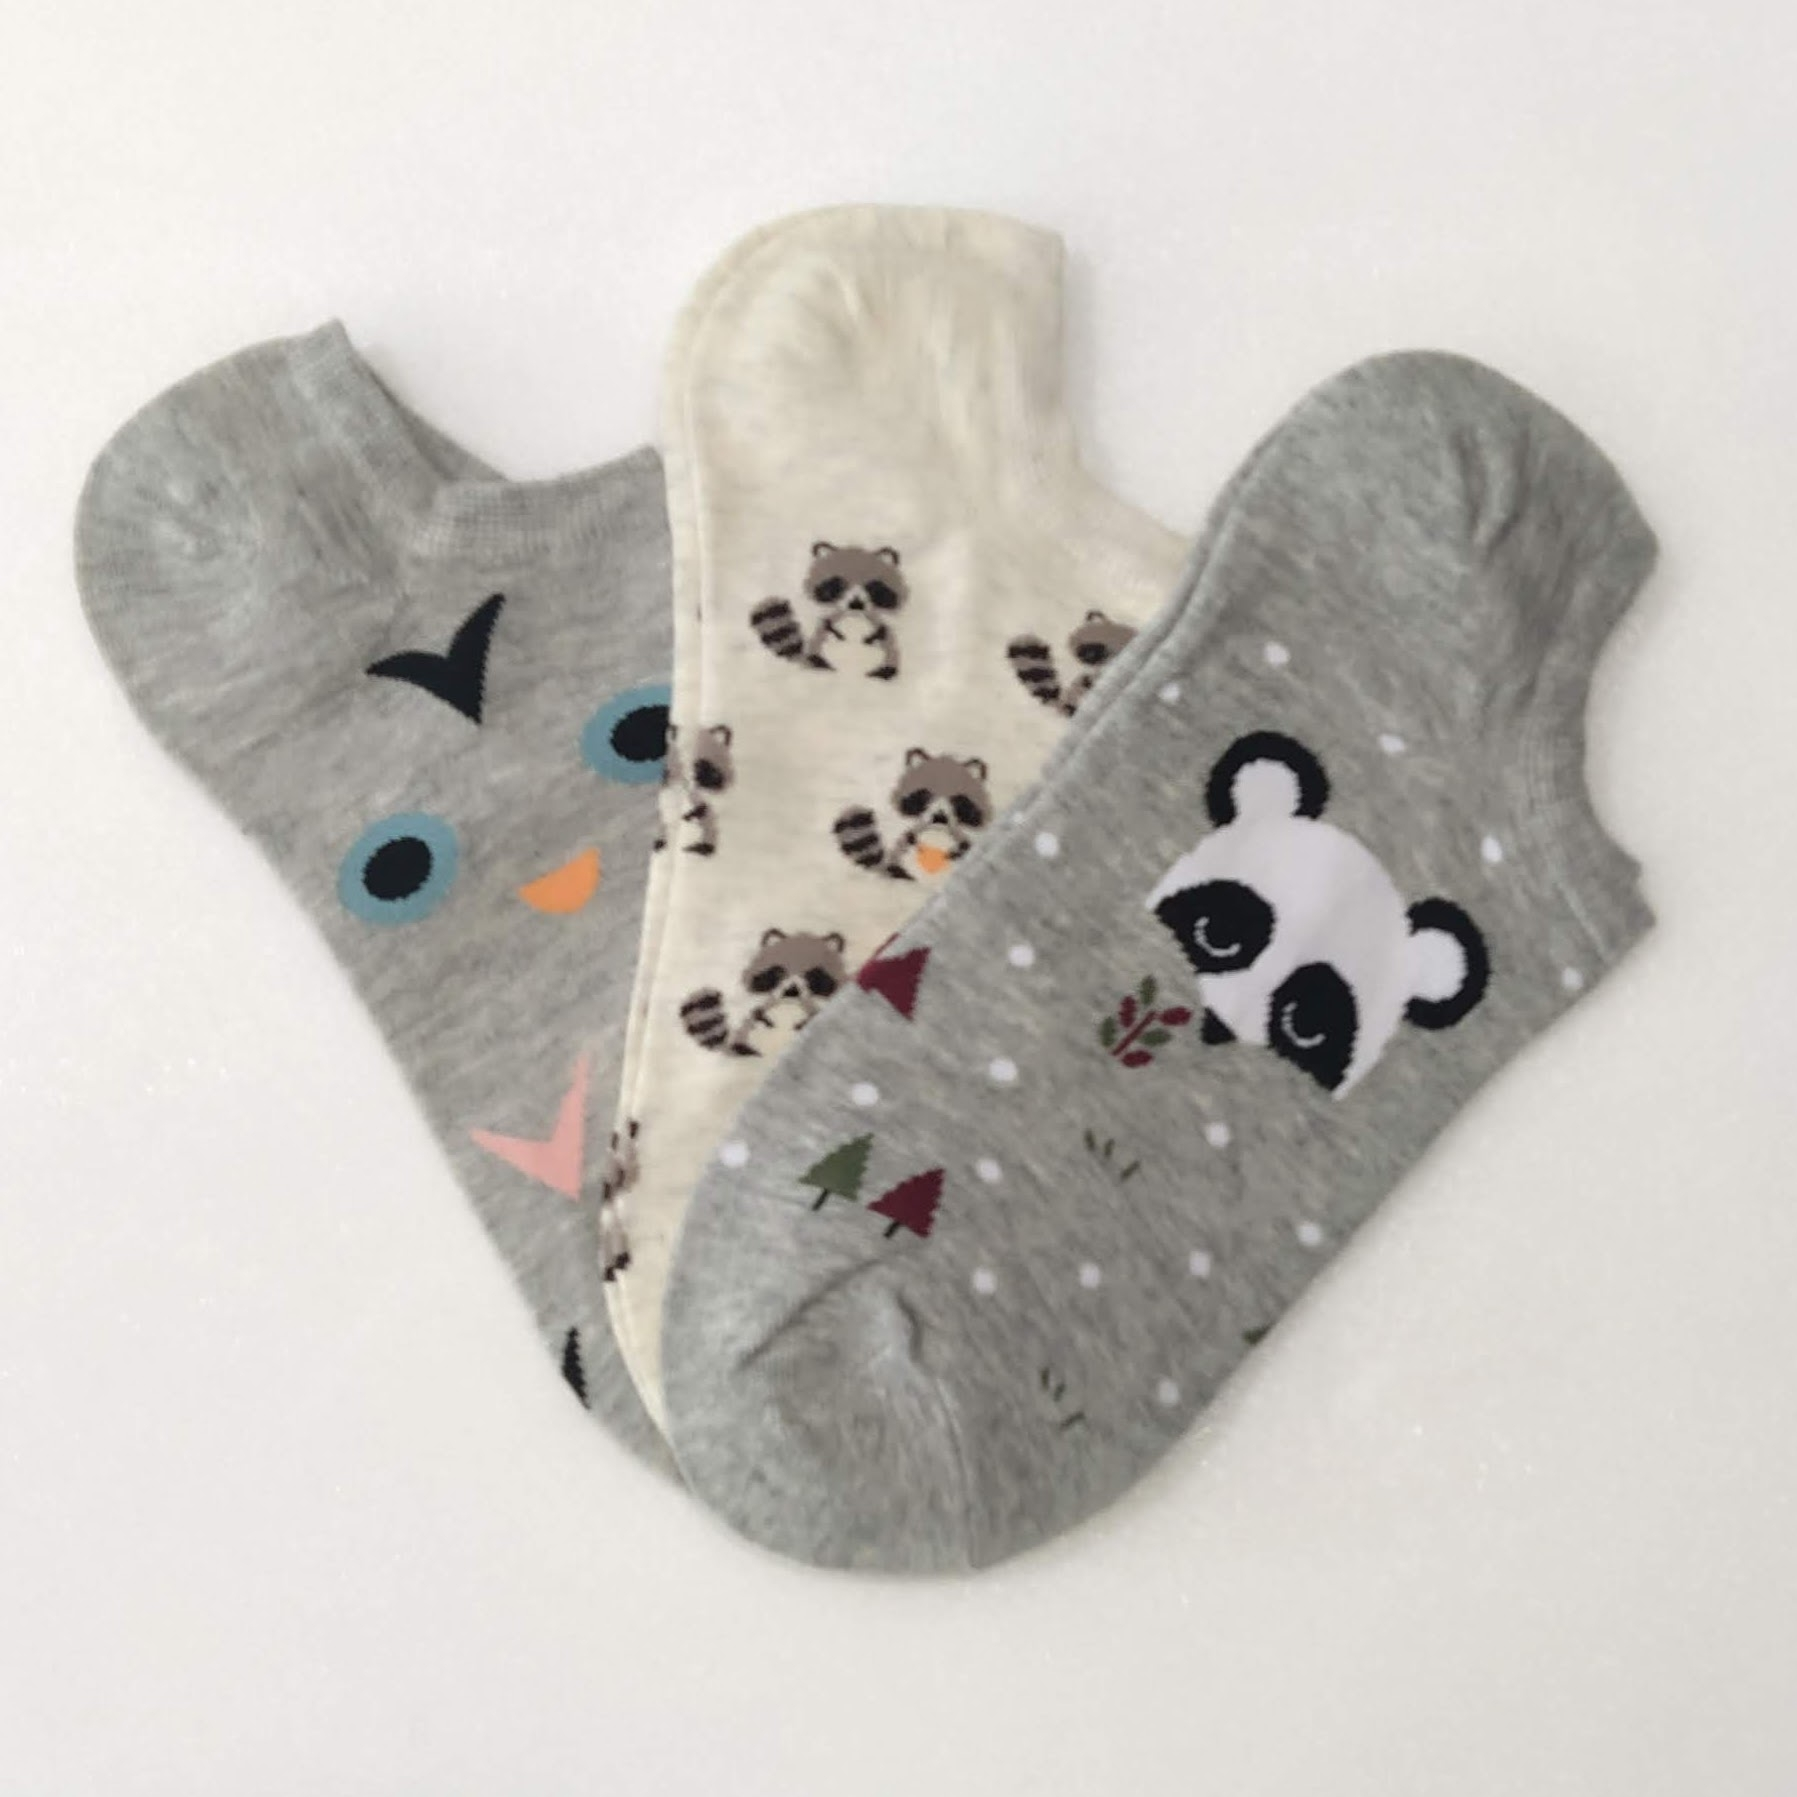 Socks Pack 3x Size 35-41 Funny Gifts Original Drawings Raccoons Panda Bears And Animals From Animals